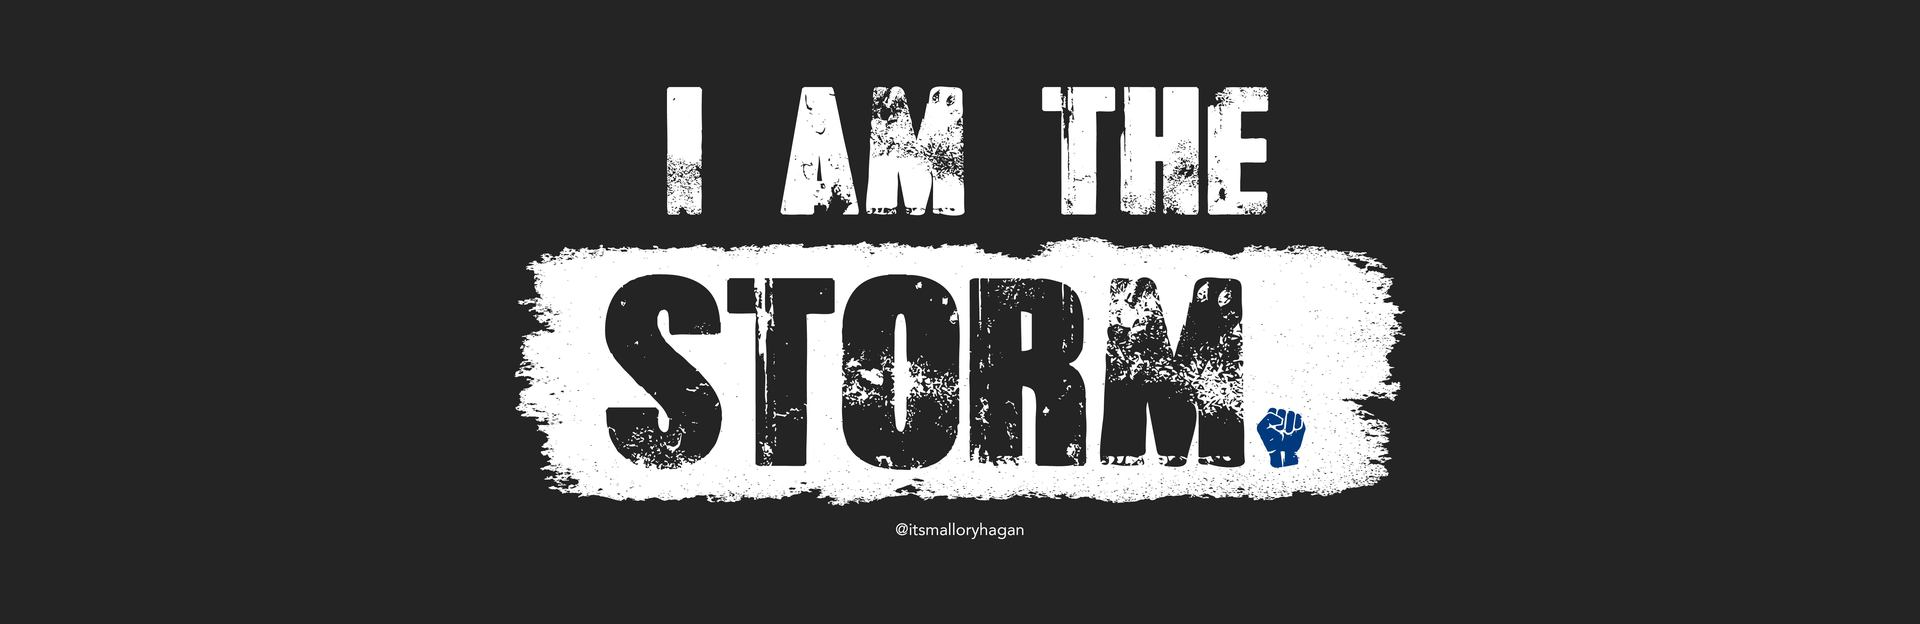 I AM THE STORM Store